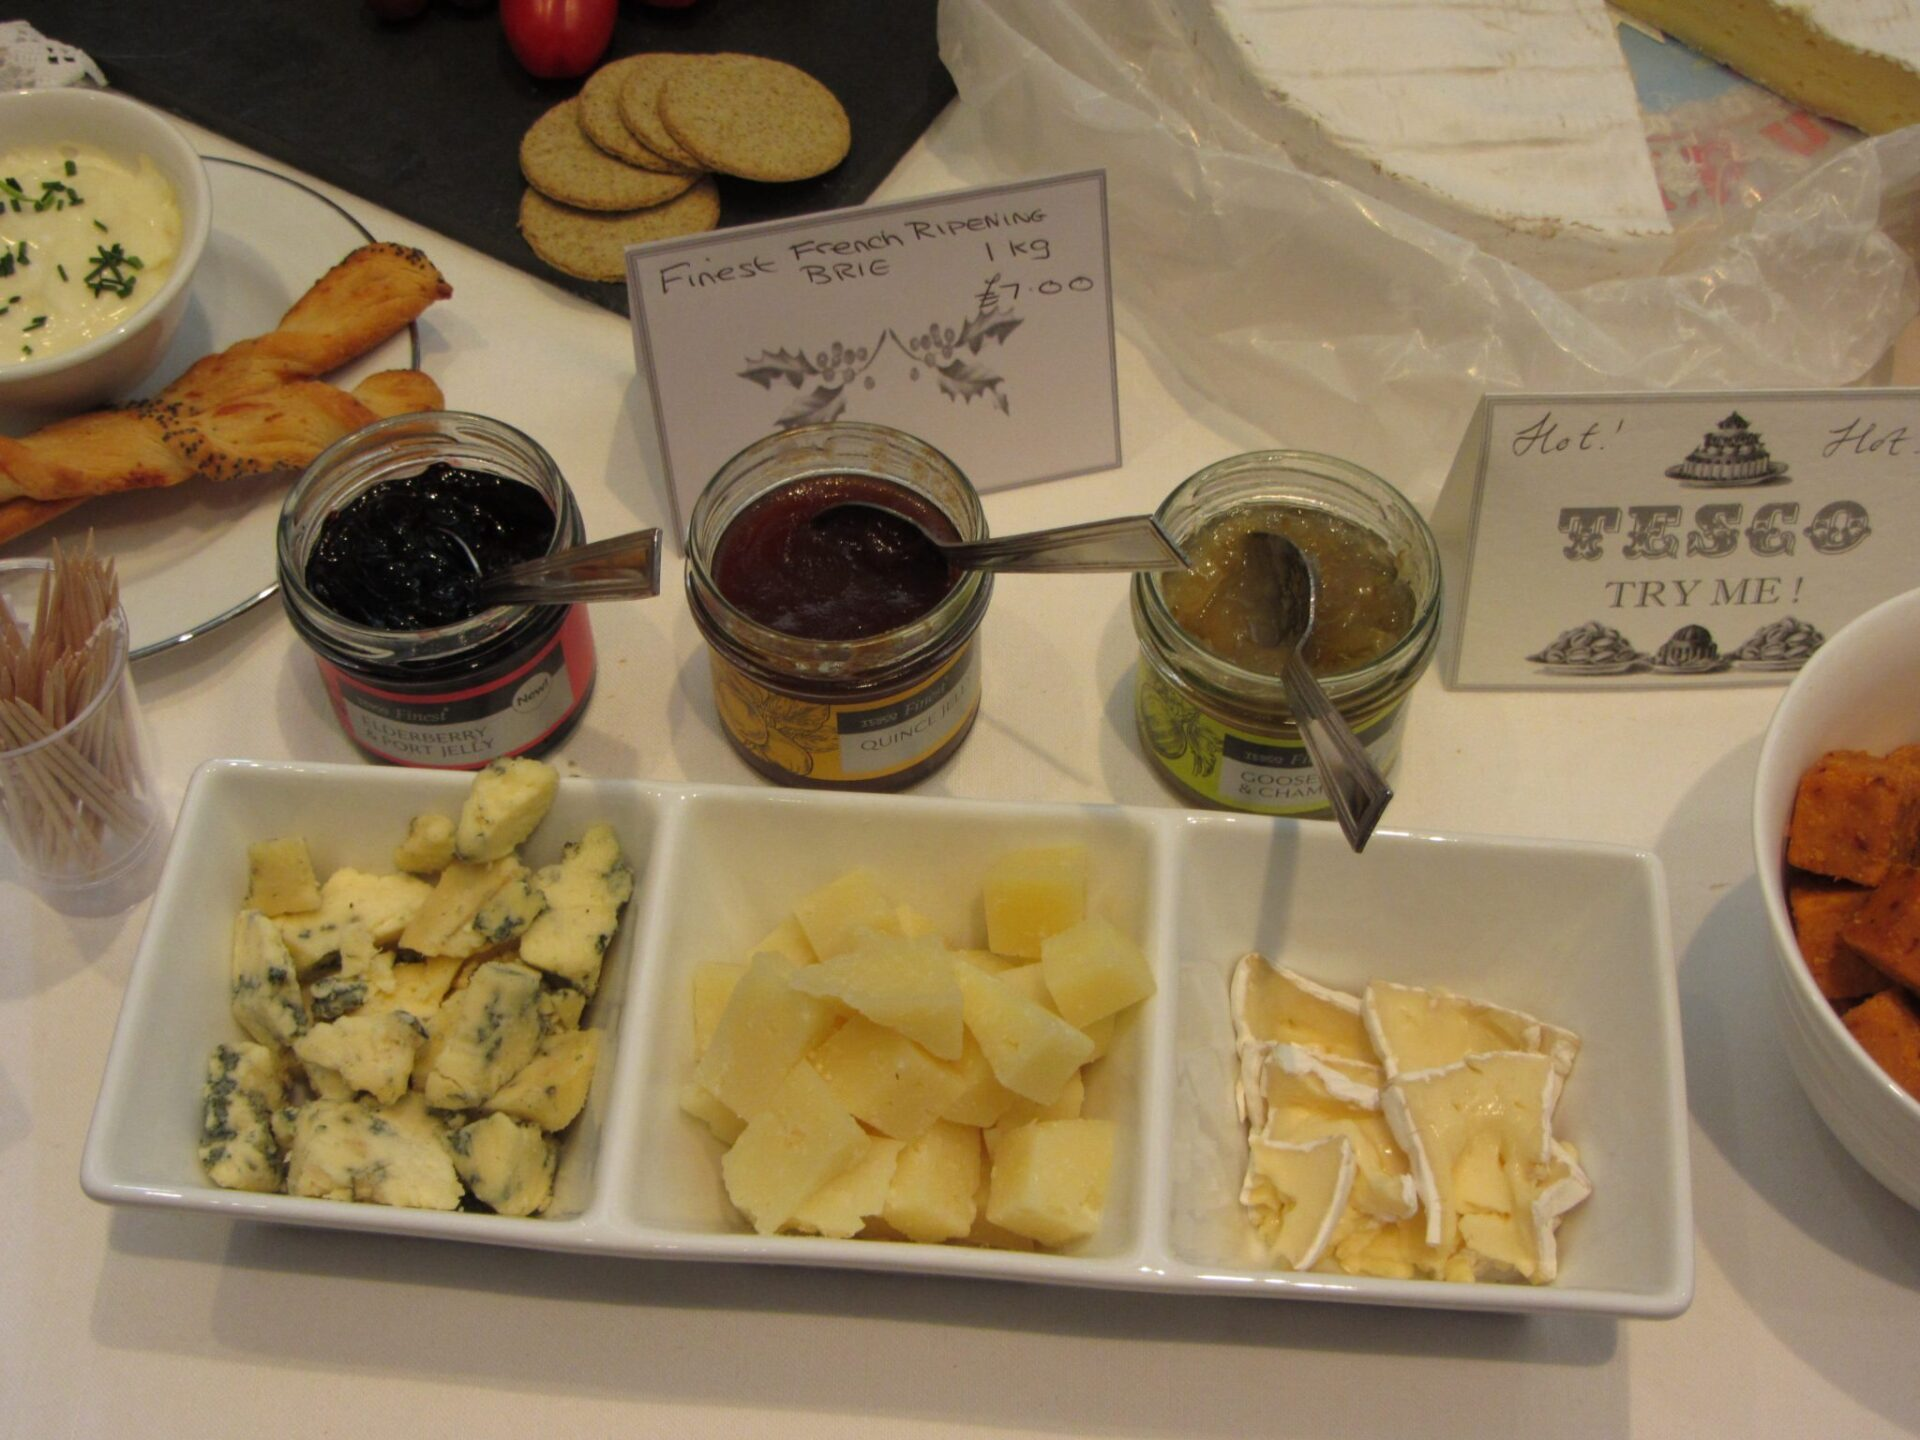 Xmas Gift Ideas for Men: Cheese and Jelly